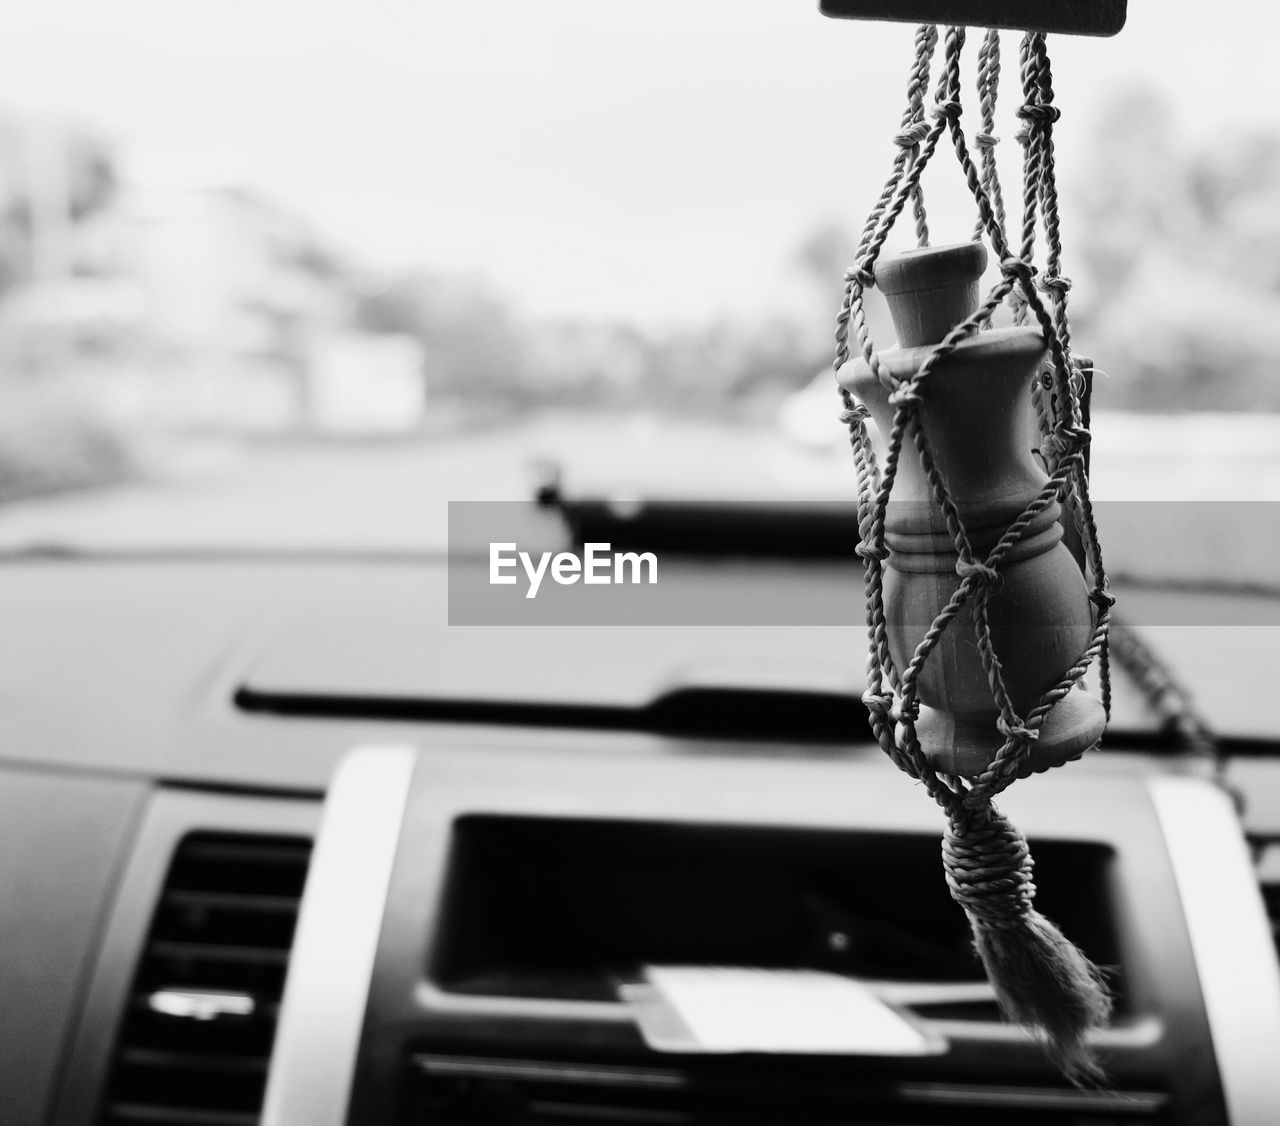 Close-up of decoration hanging in car